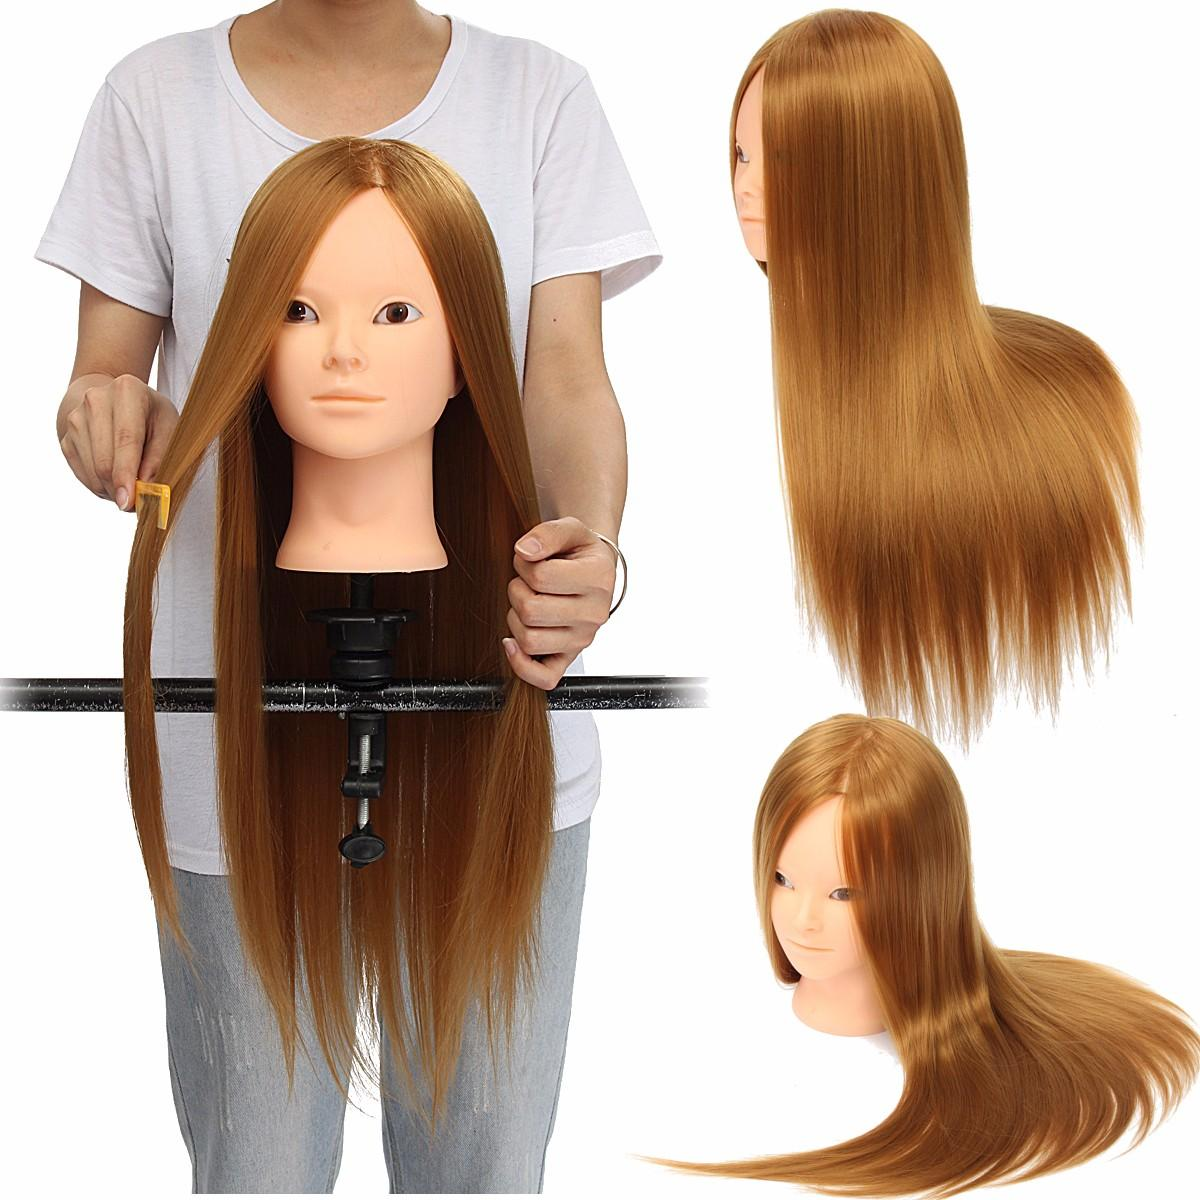 Beauty Headz™ Hair Training Mannequin Head Real Hair 24'' - Markdown Mart